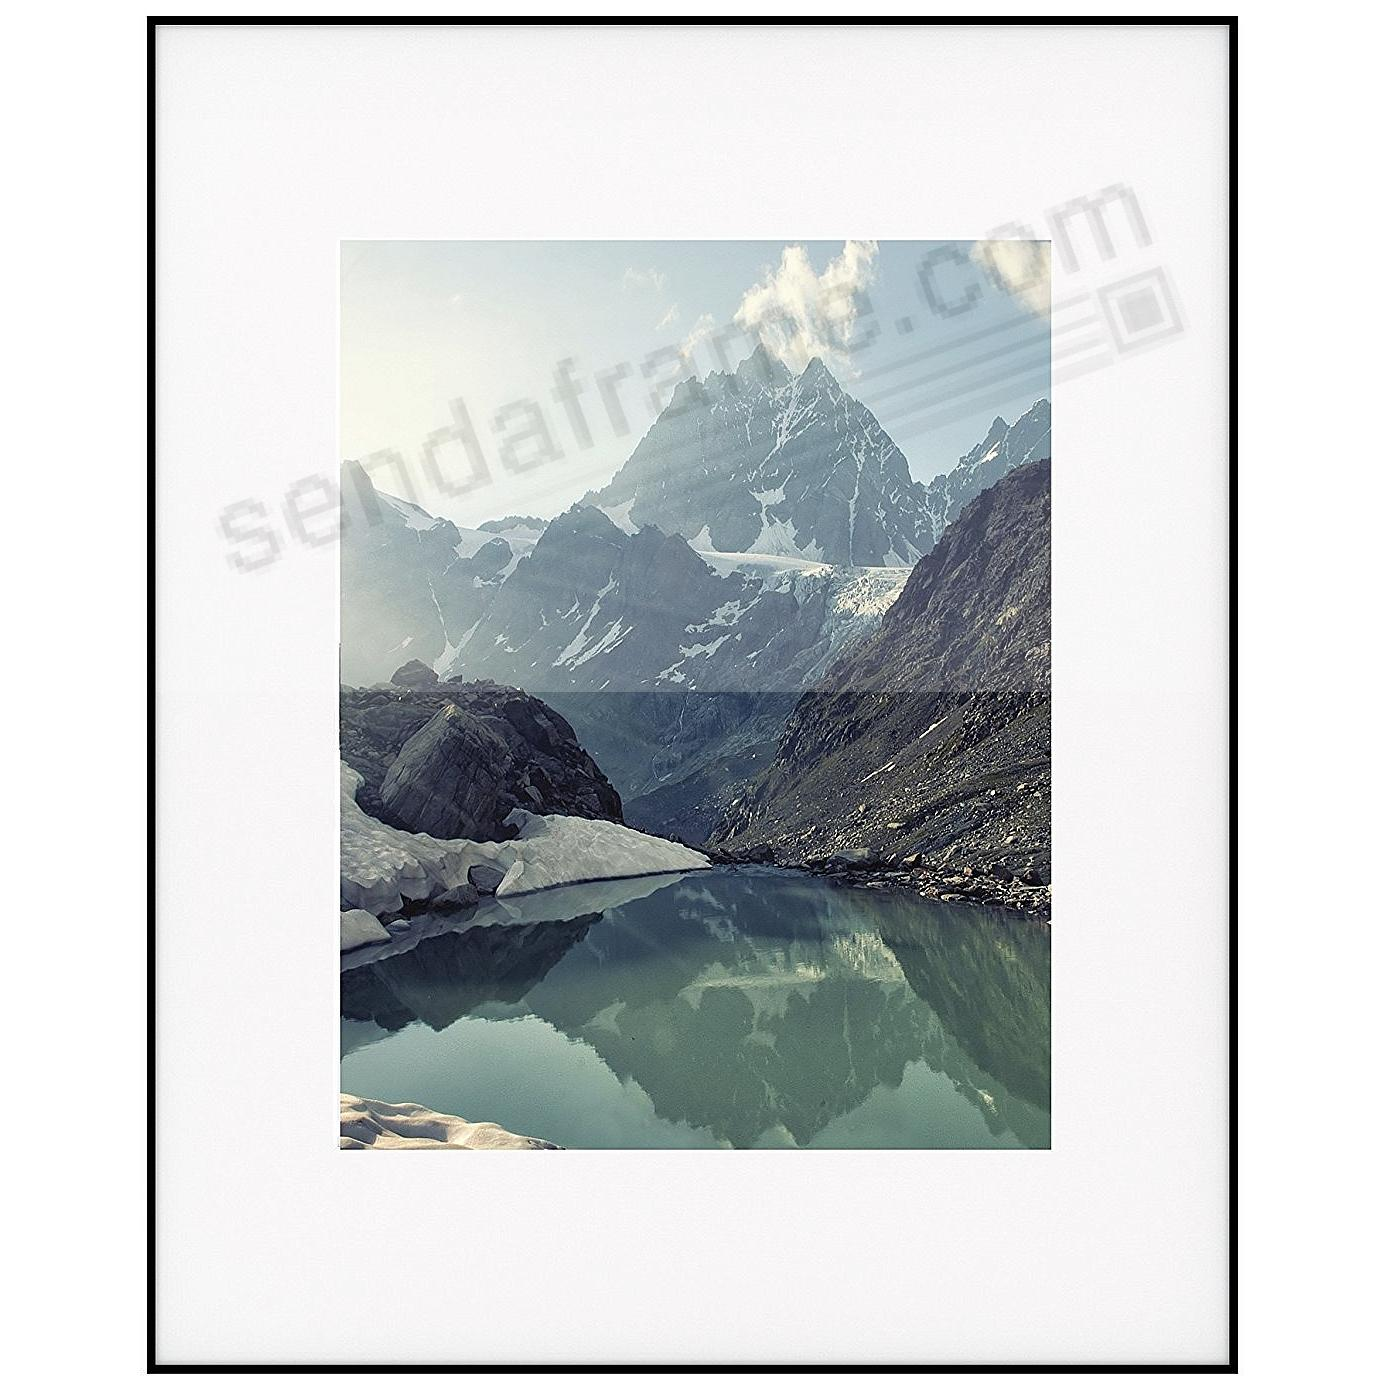 PHOTOGRAPHY Metallic frame Matte-Black/White Matted 16x20/11x14 by ARTCARE®